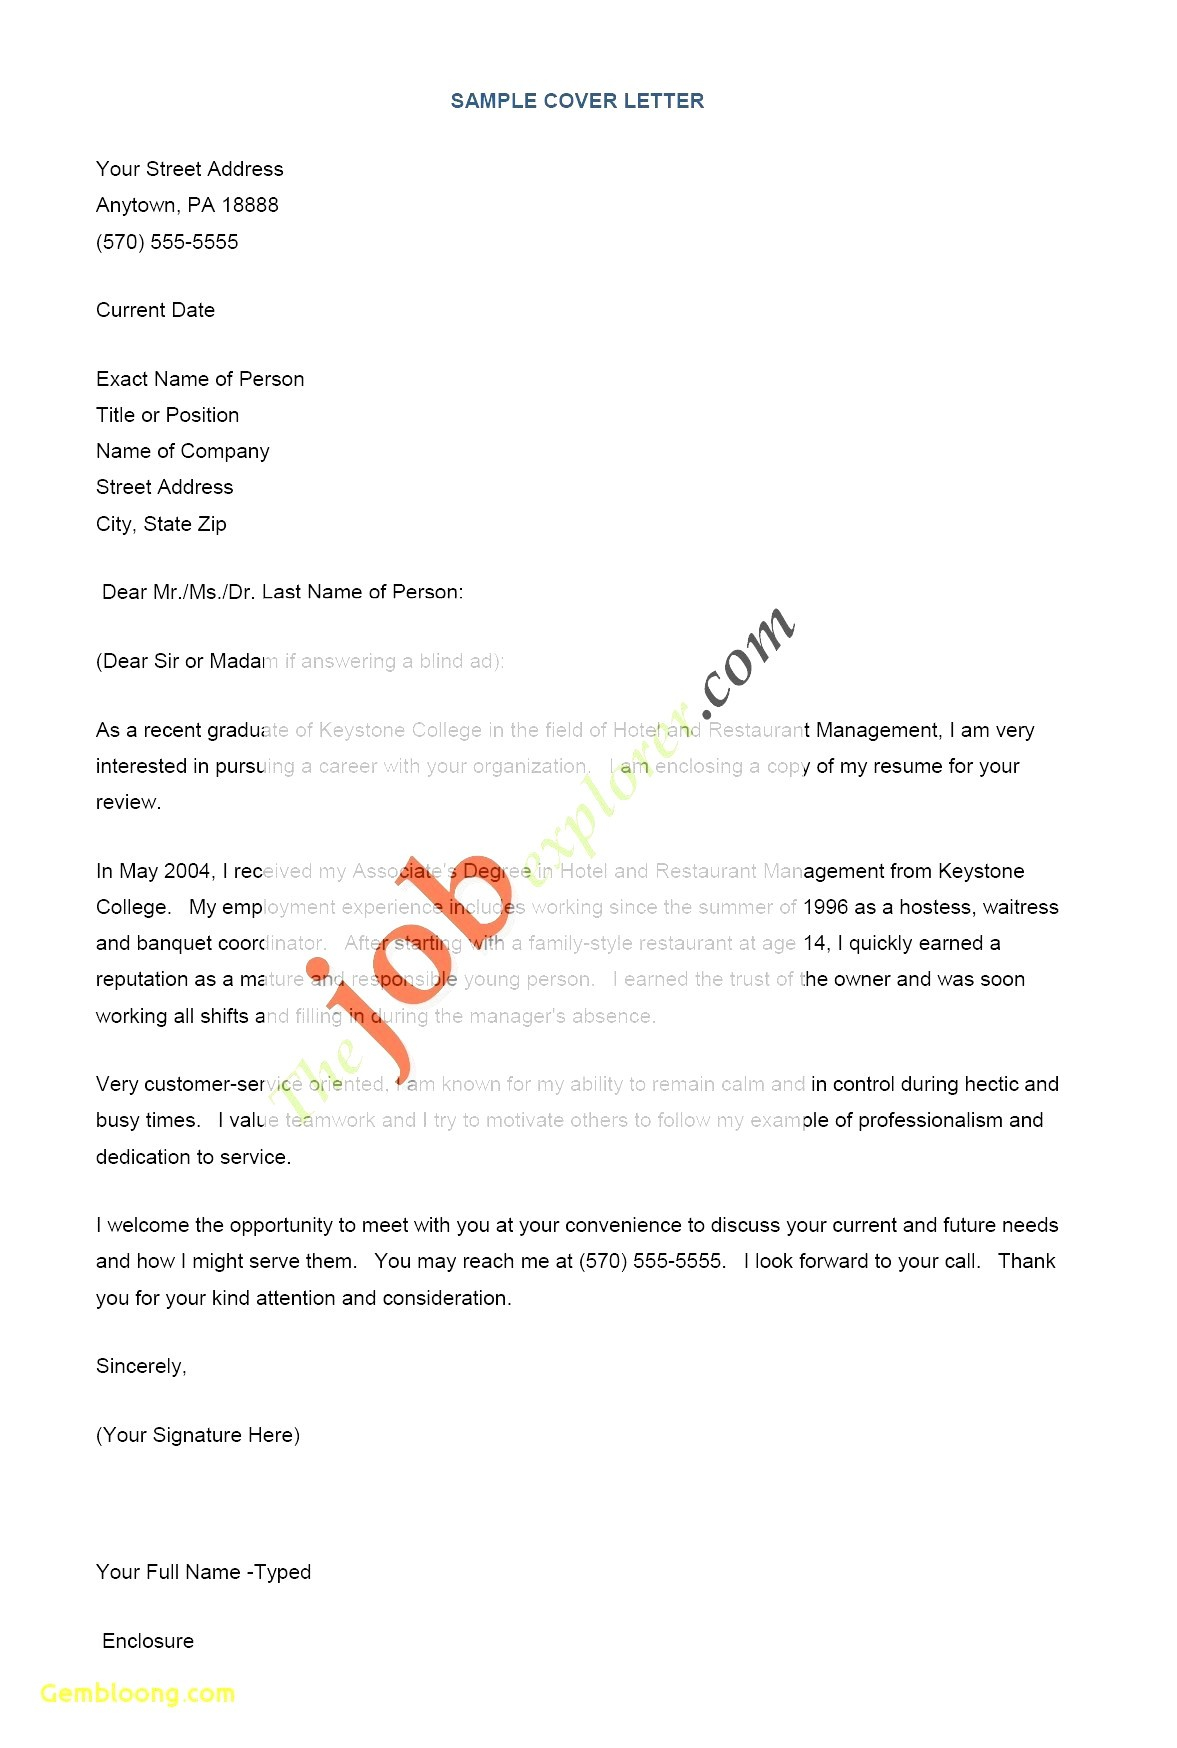 Resume Builder Template Free - Free Resume Builder Word Doc Resume Resume Examples Argwl0zwbq